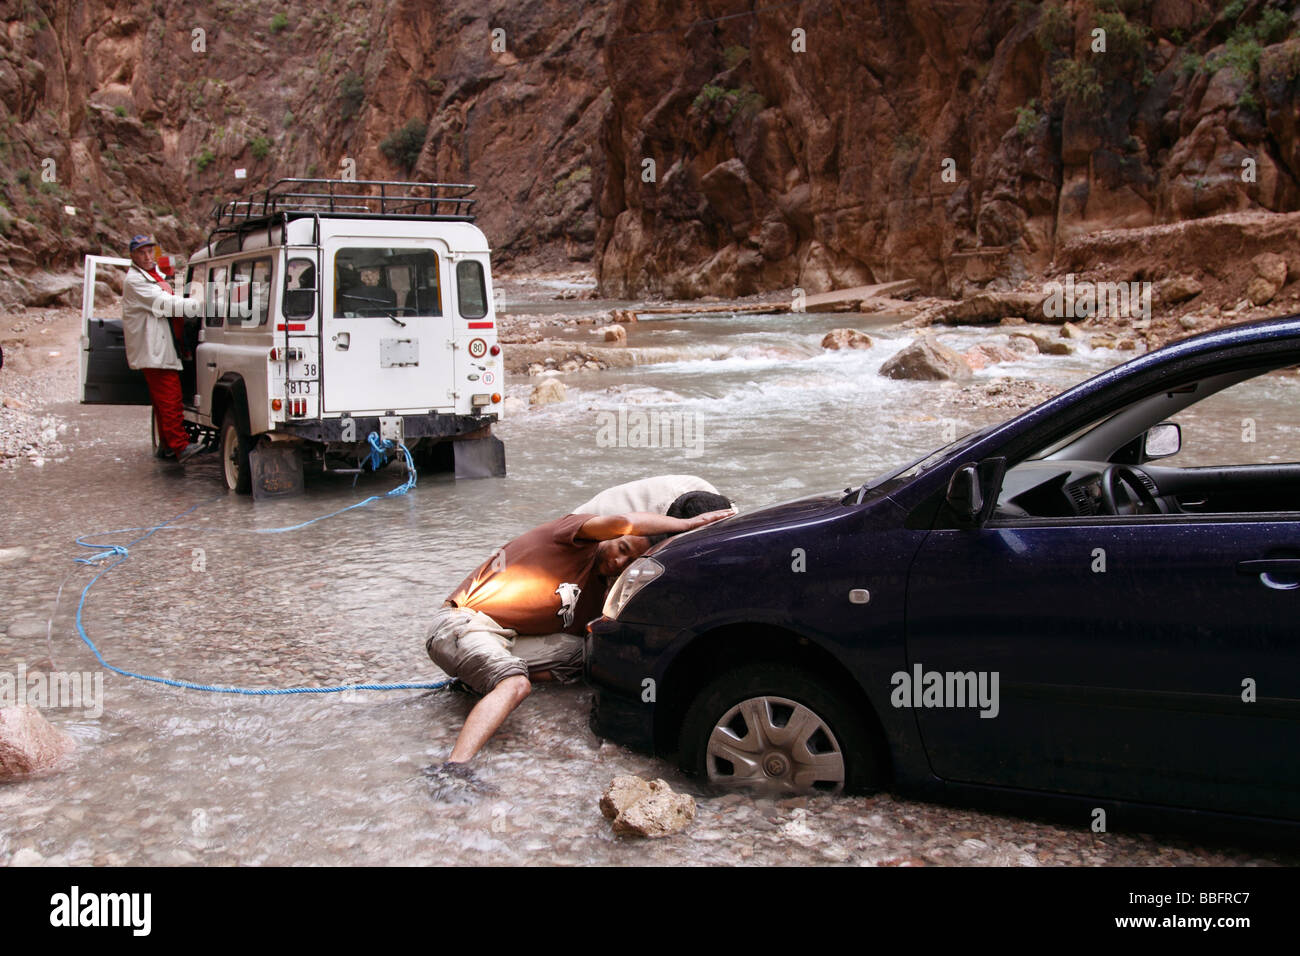 Africa, North Africa, Morocco, Atlas Region, Todra Gorge, Automobile, Vehicle Stuck in Creek - Stock Image